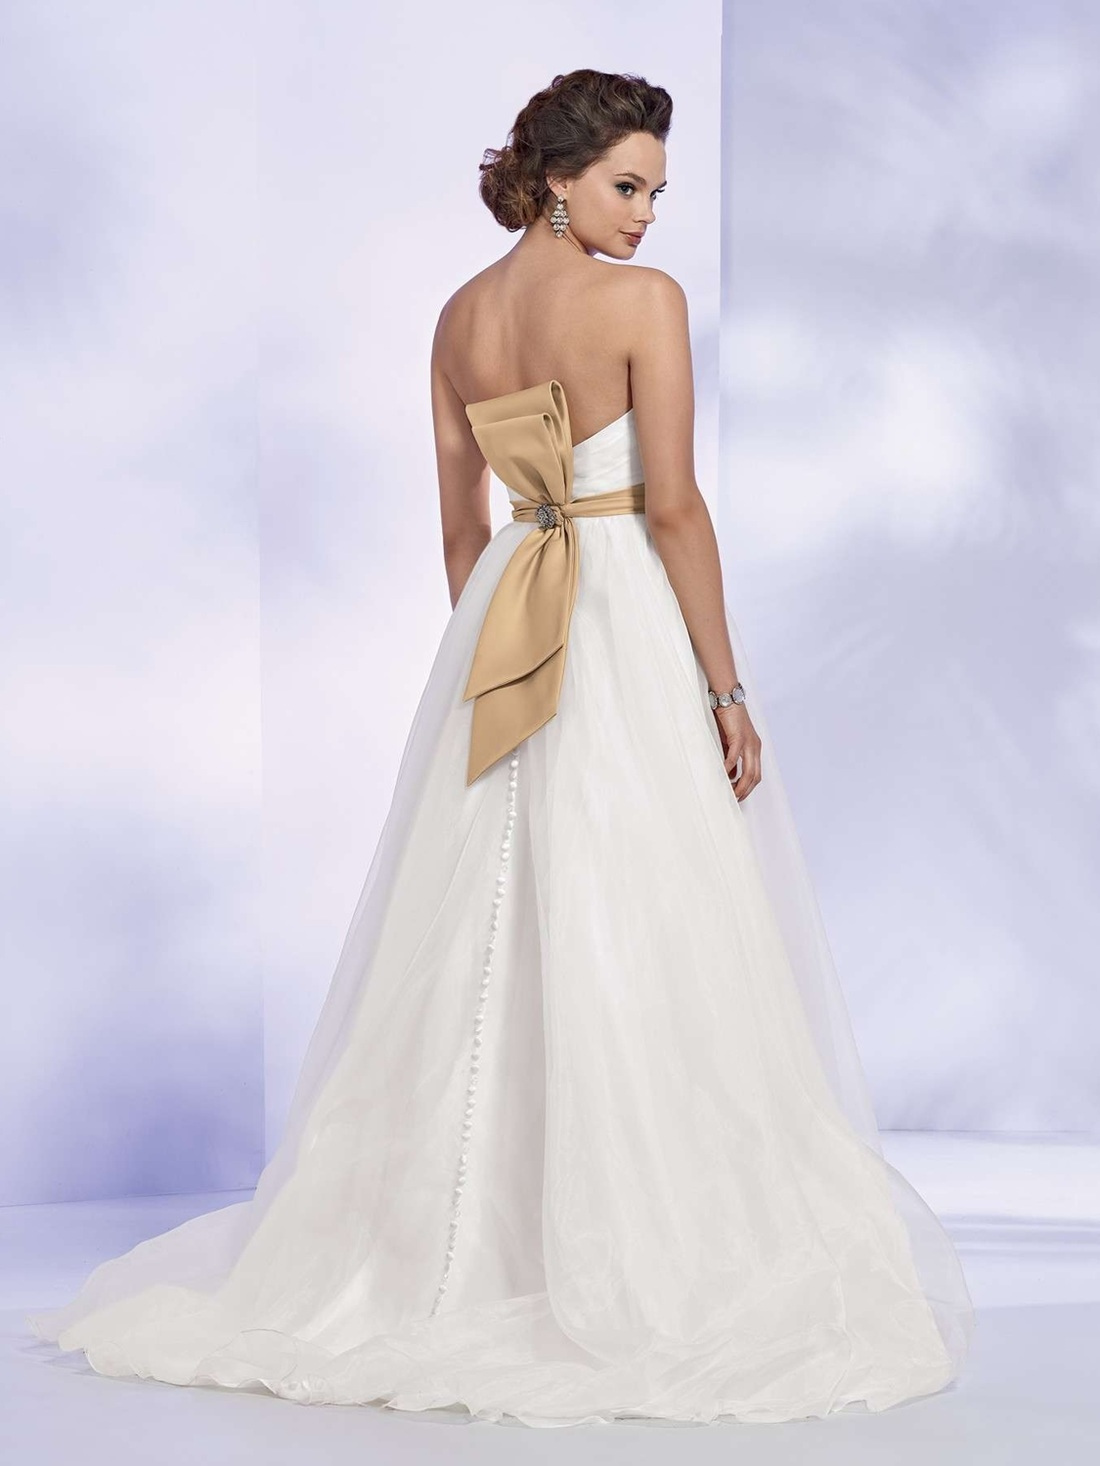 Unique wedding dress alternative wedding dress alternate wedding - Picture Benjamin Roberts 2605 Benjamin Roberts Wedding Dress Affordable Alternatives To Benjamin Roberts